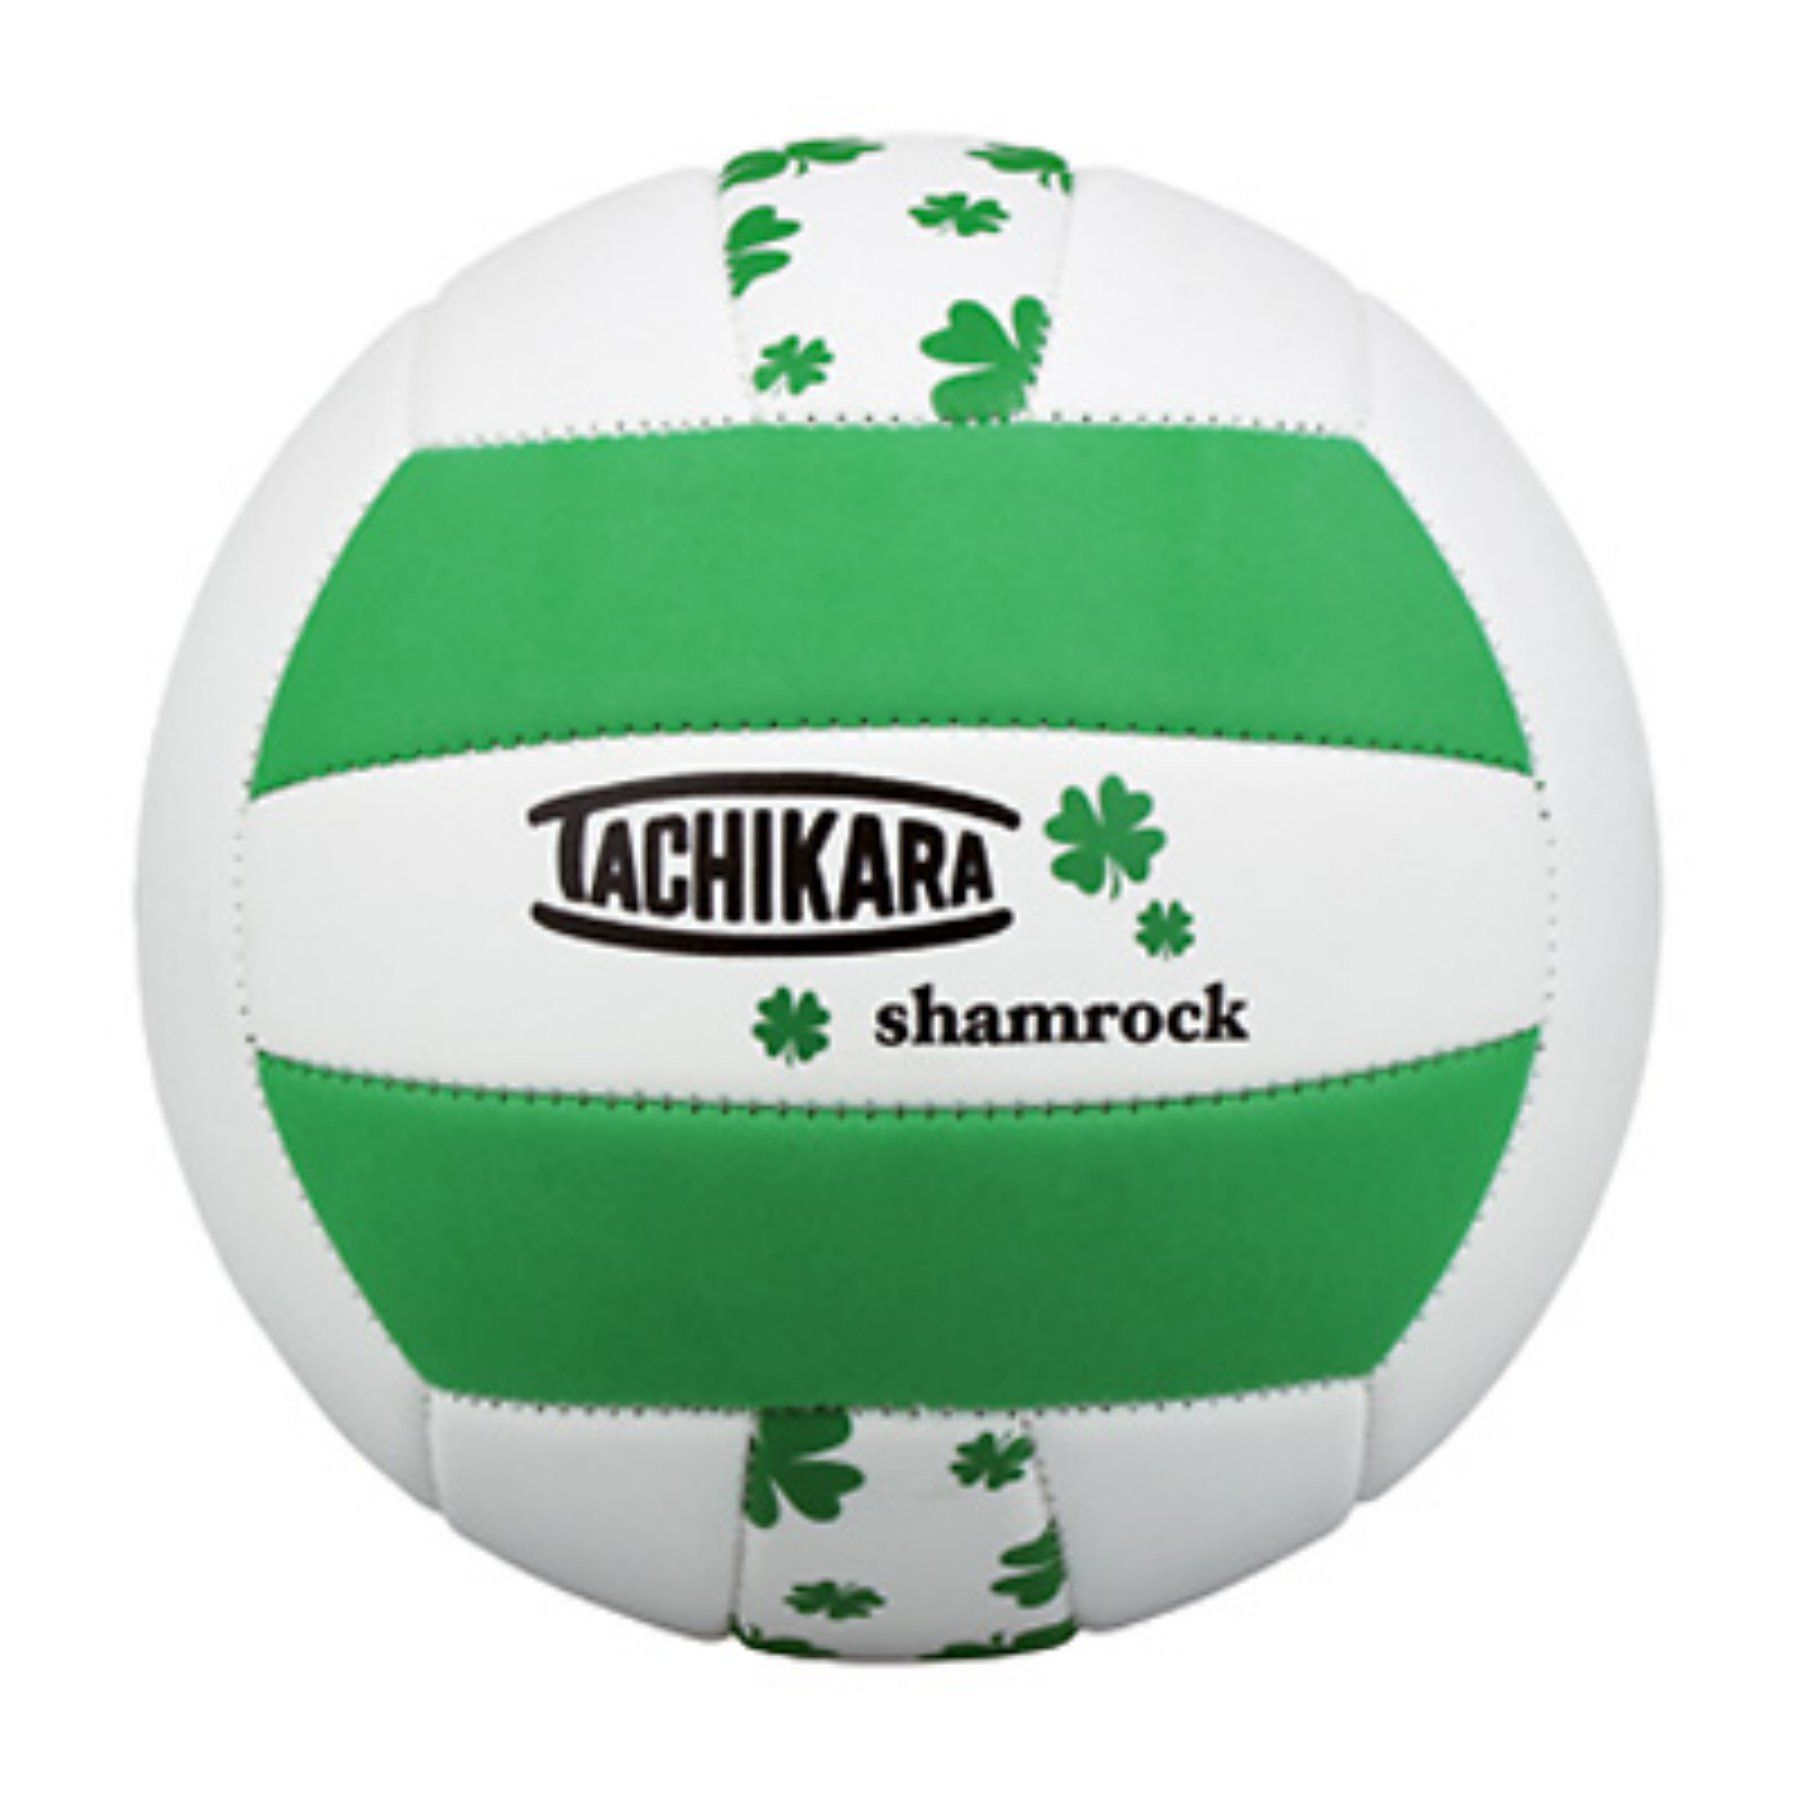 Tachikara Softec Shamrock Volleyball Shamrock Volleyball Fun Sports Volleyballs